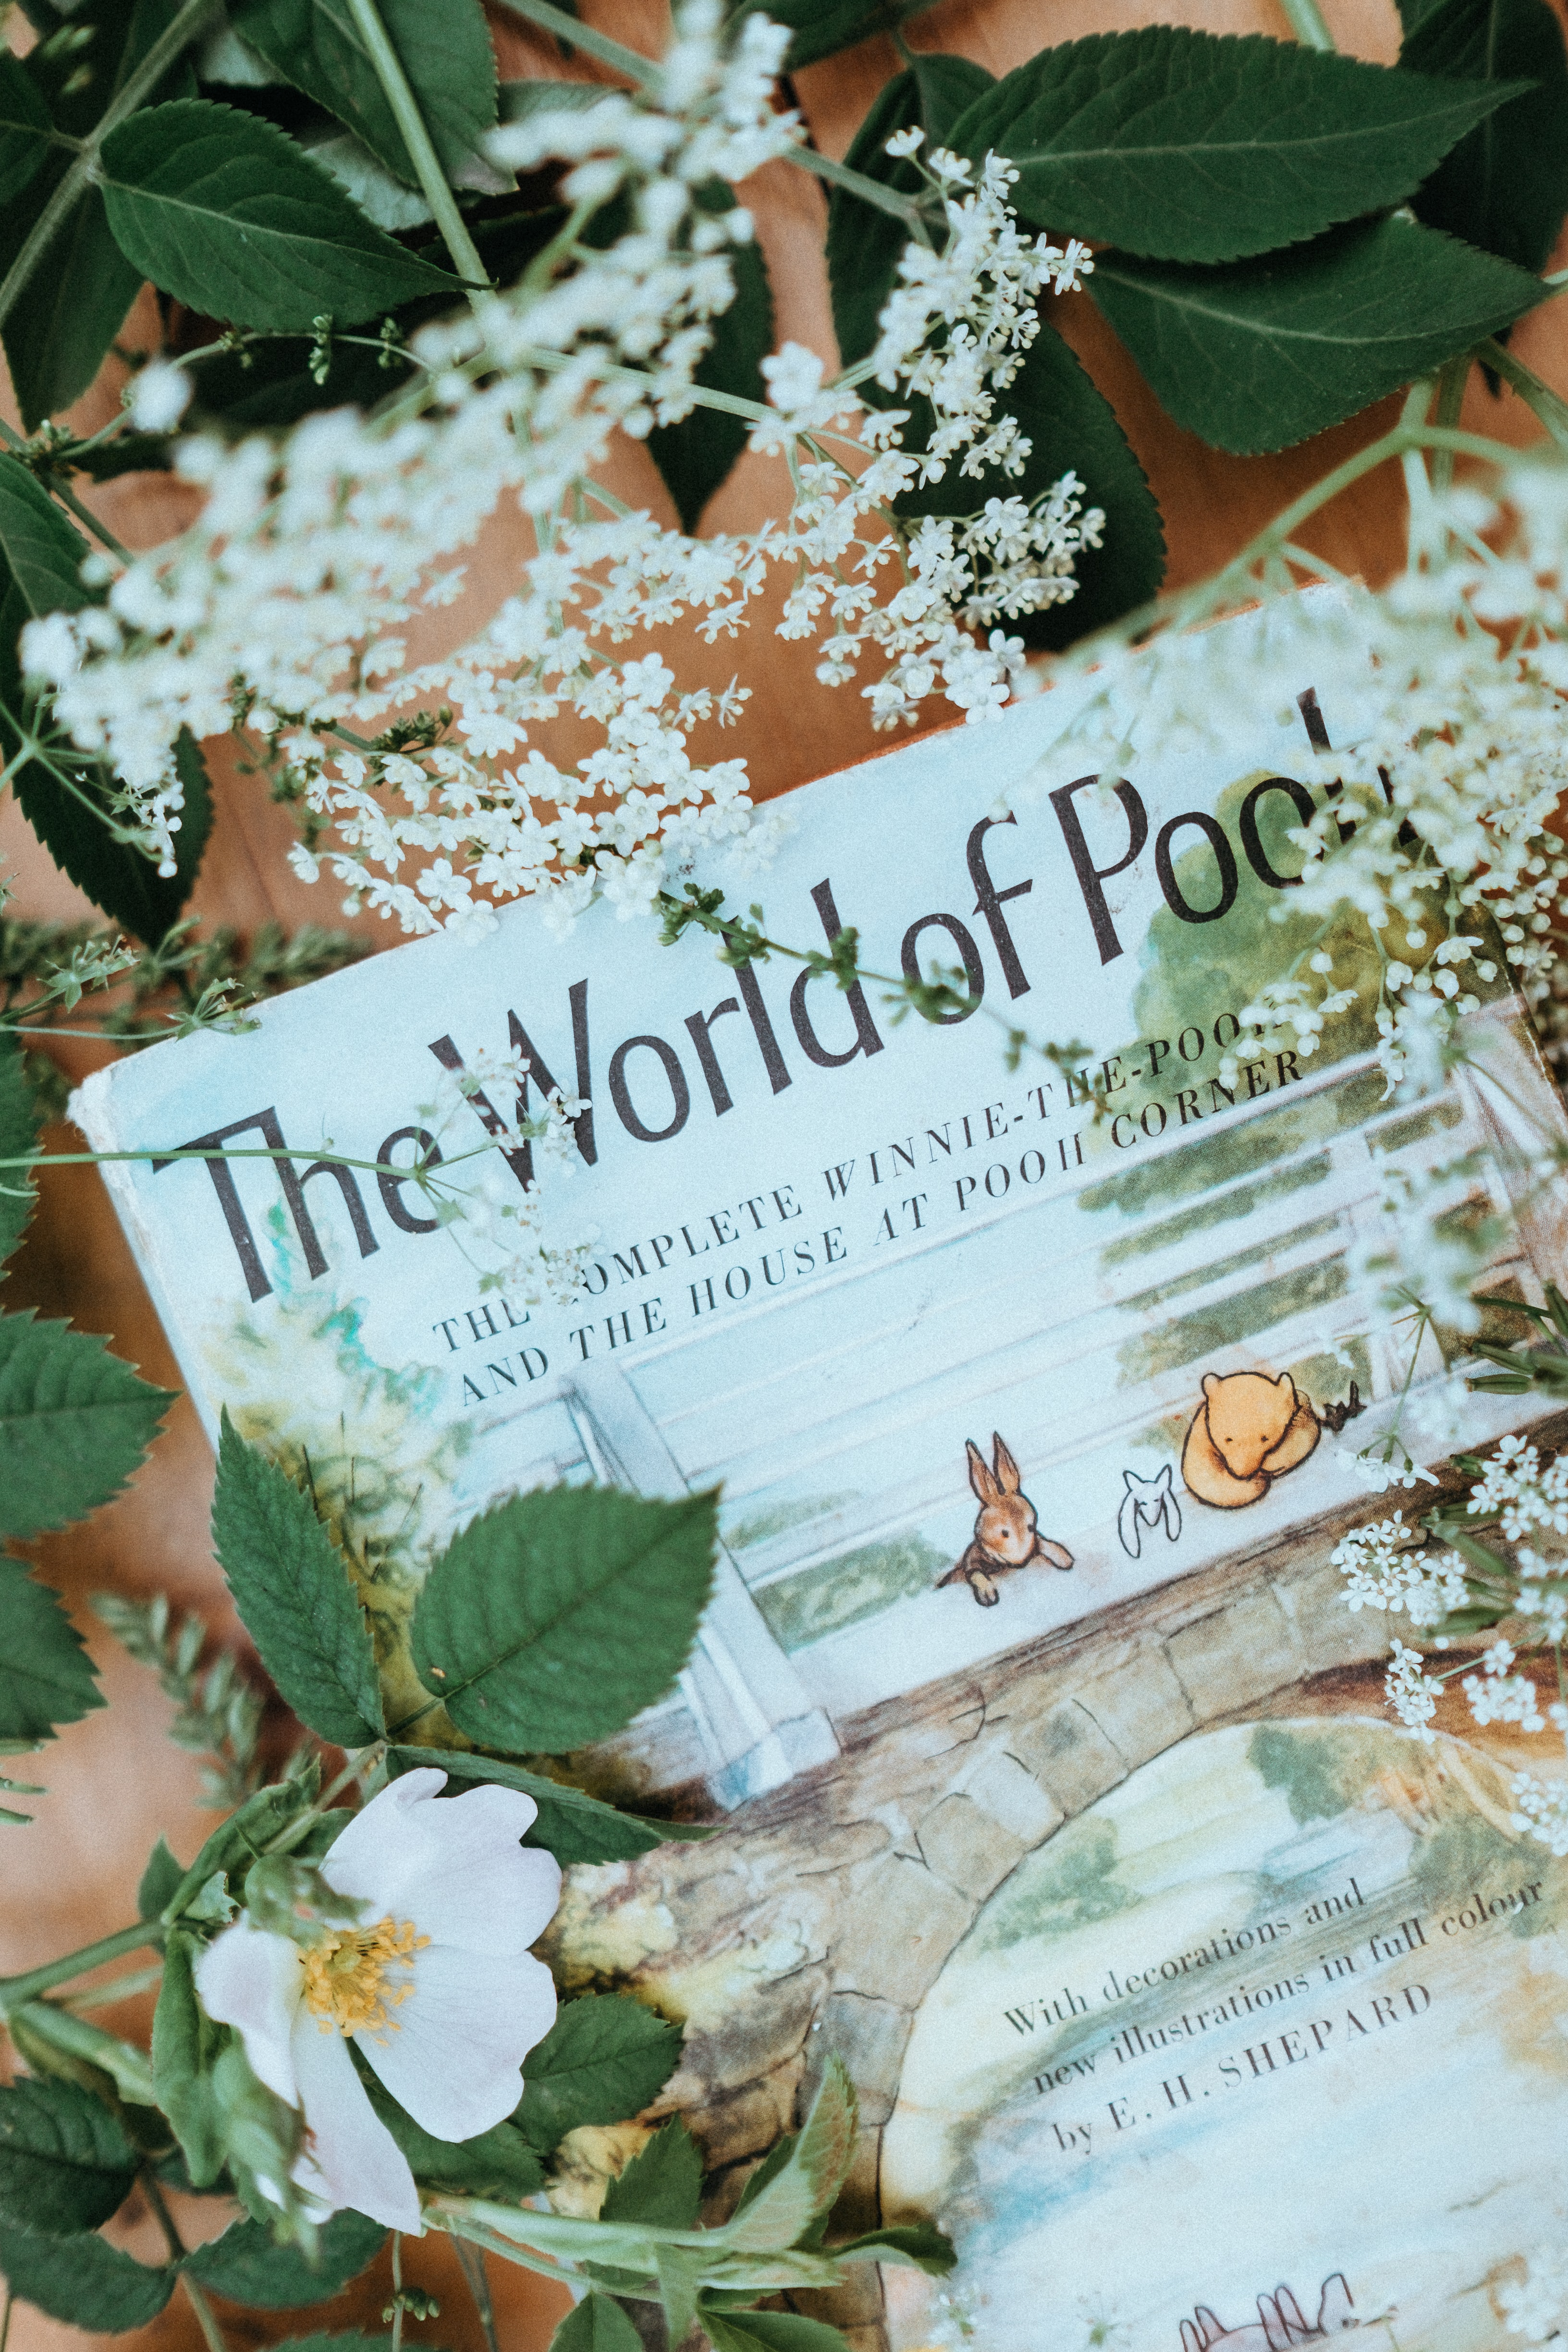 The World of Pool illustration beside flowers